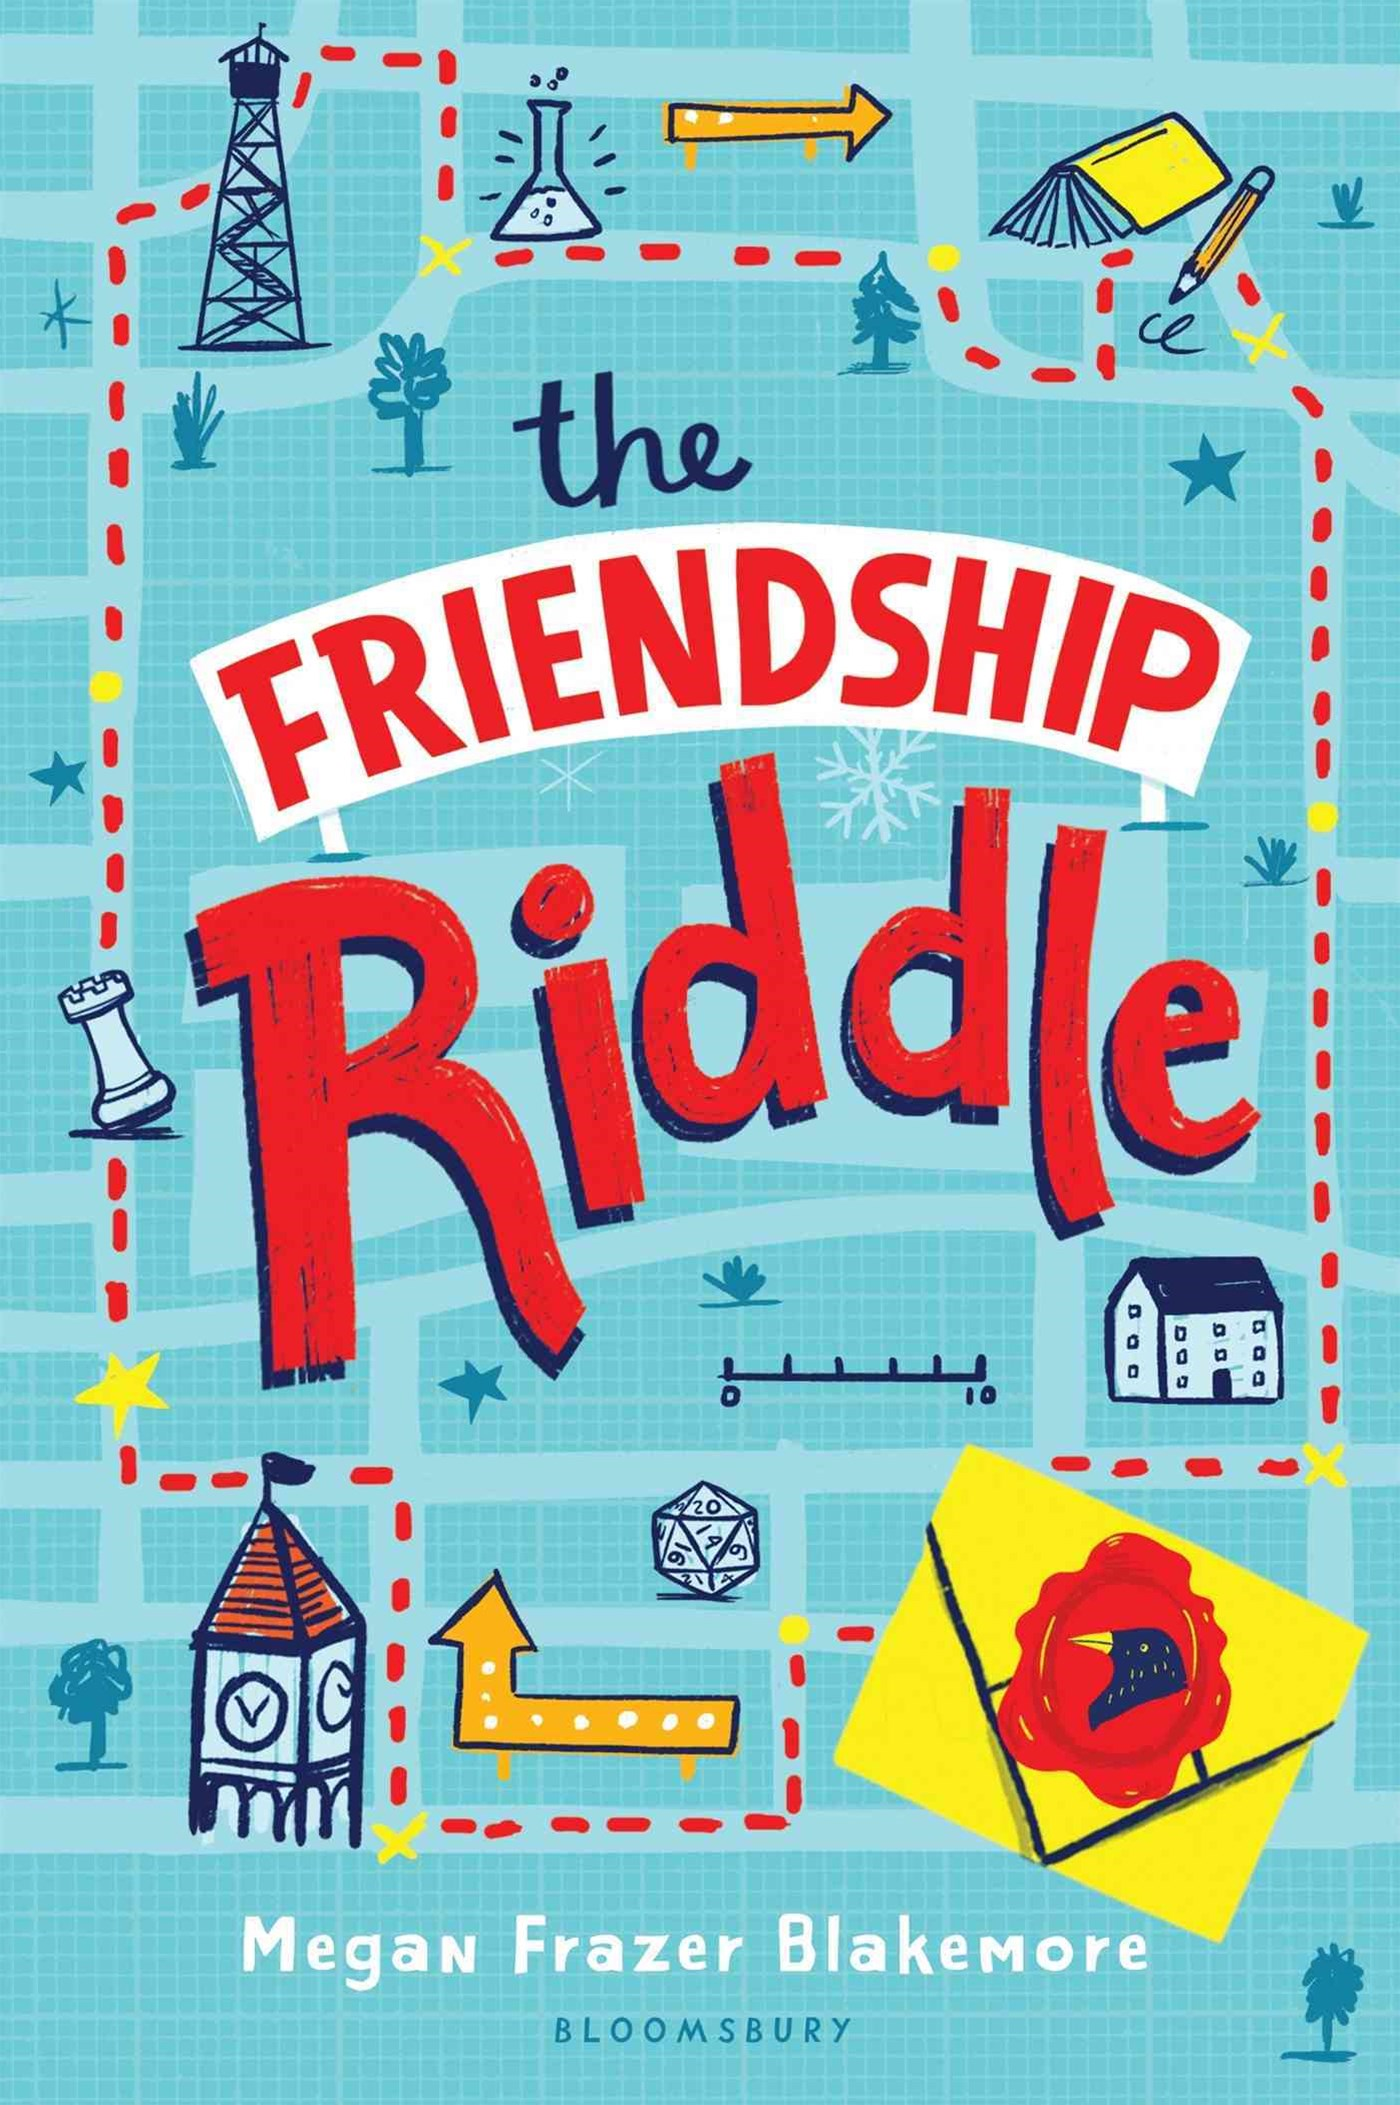 Friendship Riddle